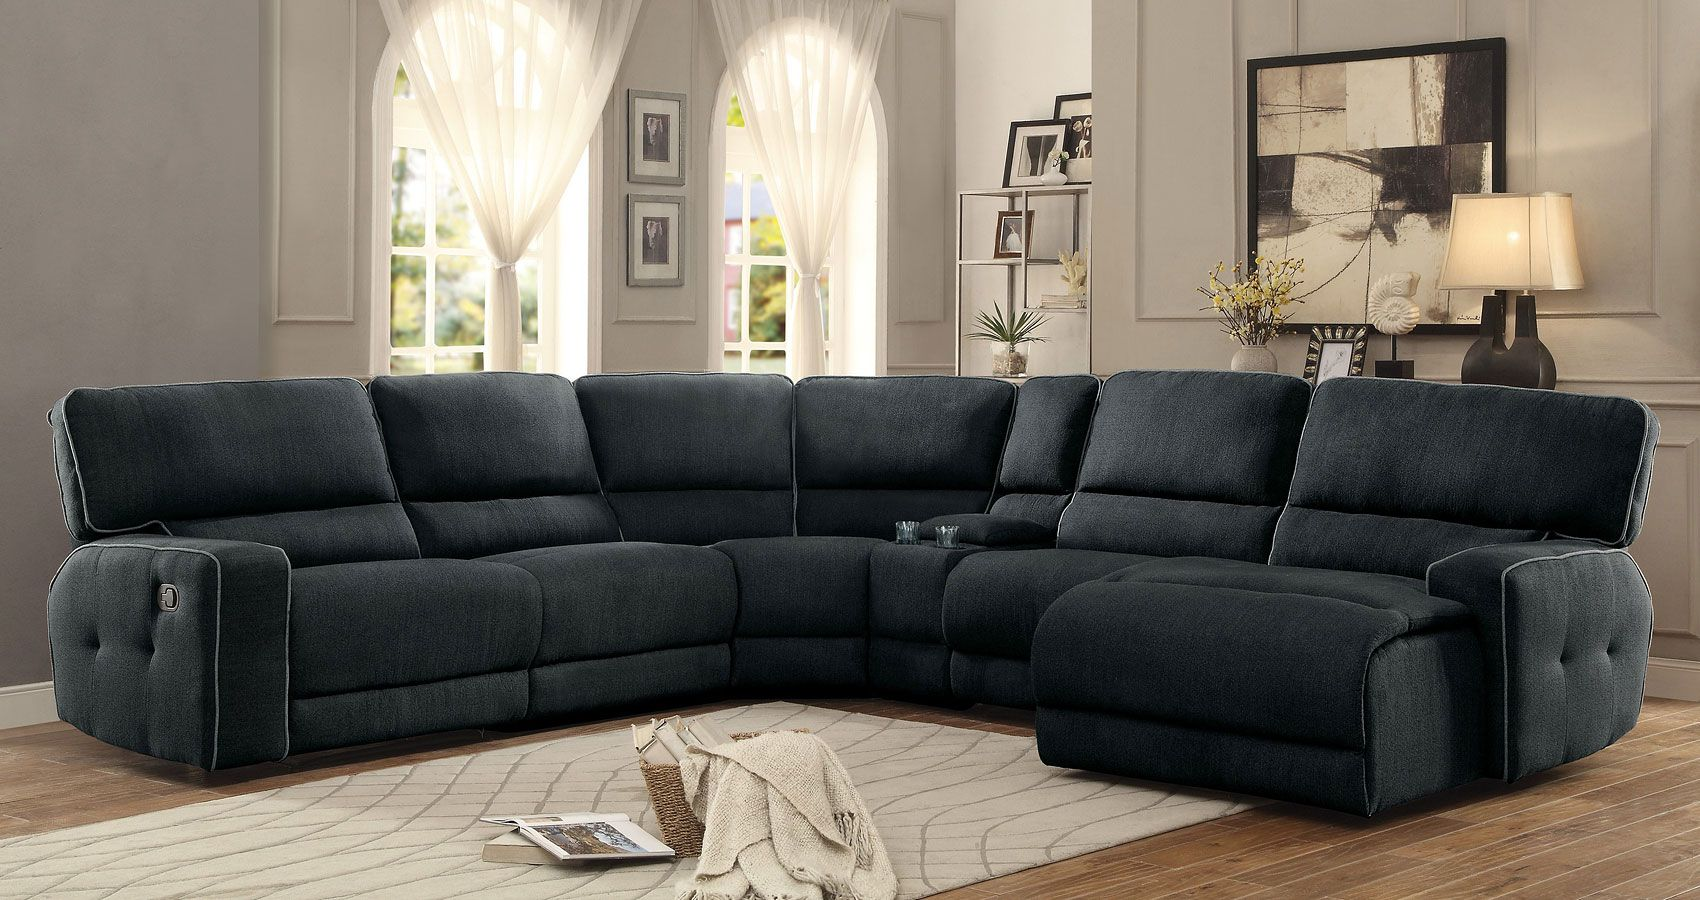 Keamey Modular Reclining Sectional W Chaise Homelegance In Sectionals With A Co Furniture Design Living Room Reclining Sectional Sectional Sofa With Recliner #pasadena #tan #living #room #sectional